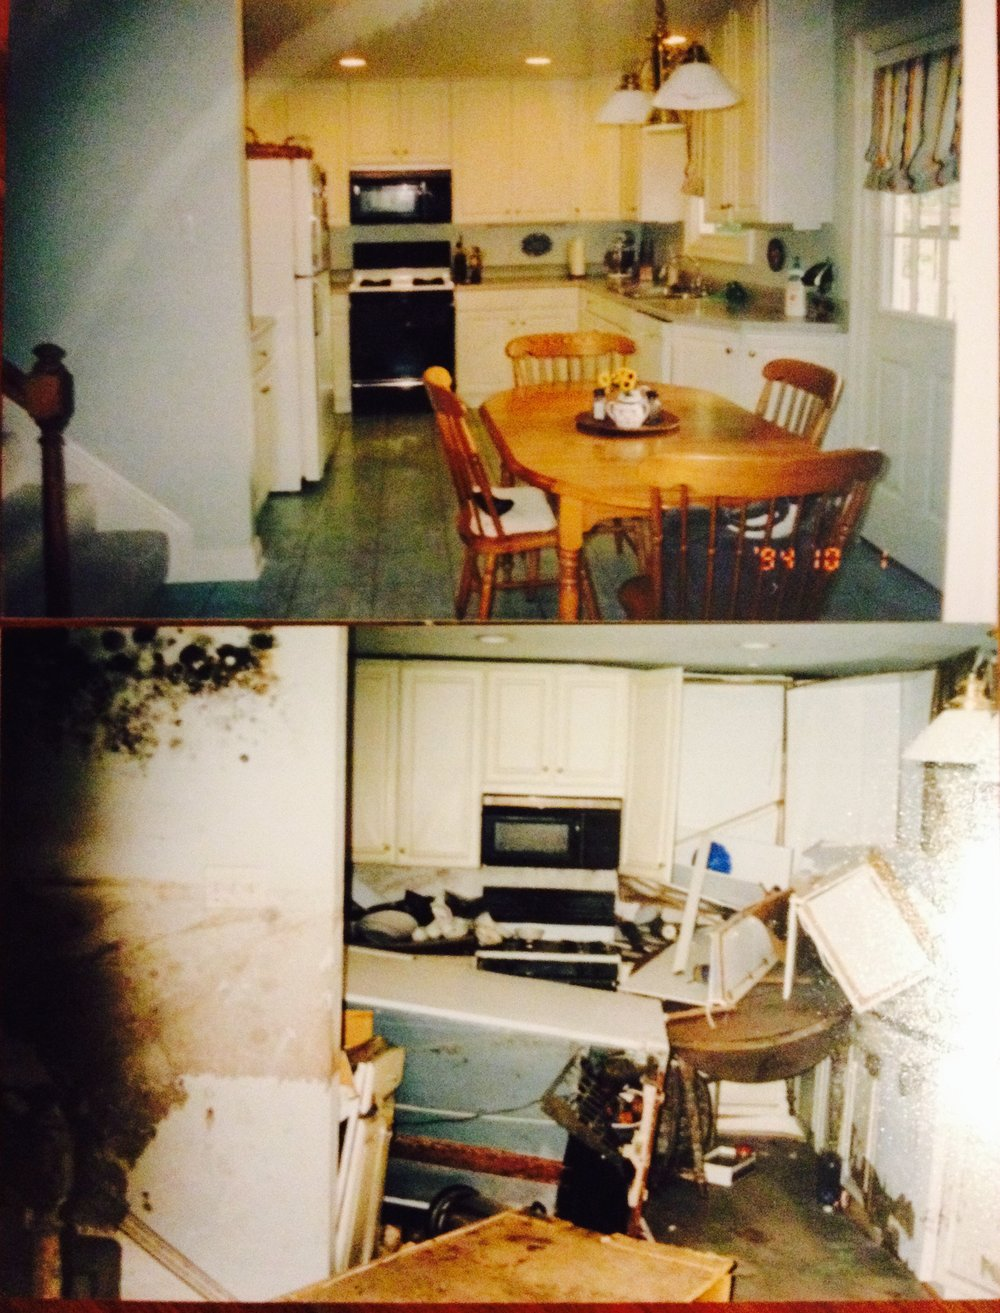 Kitchen Pre and Post Katrina, Lakeview, New Orleans